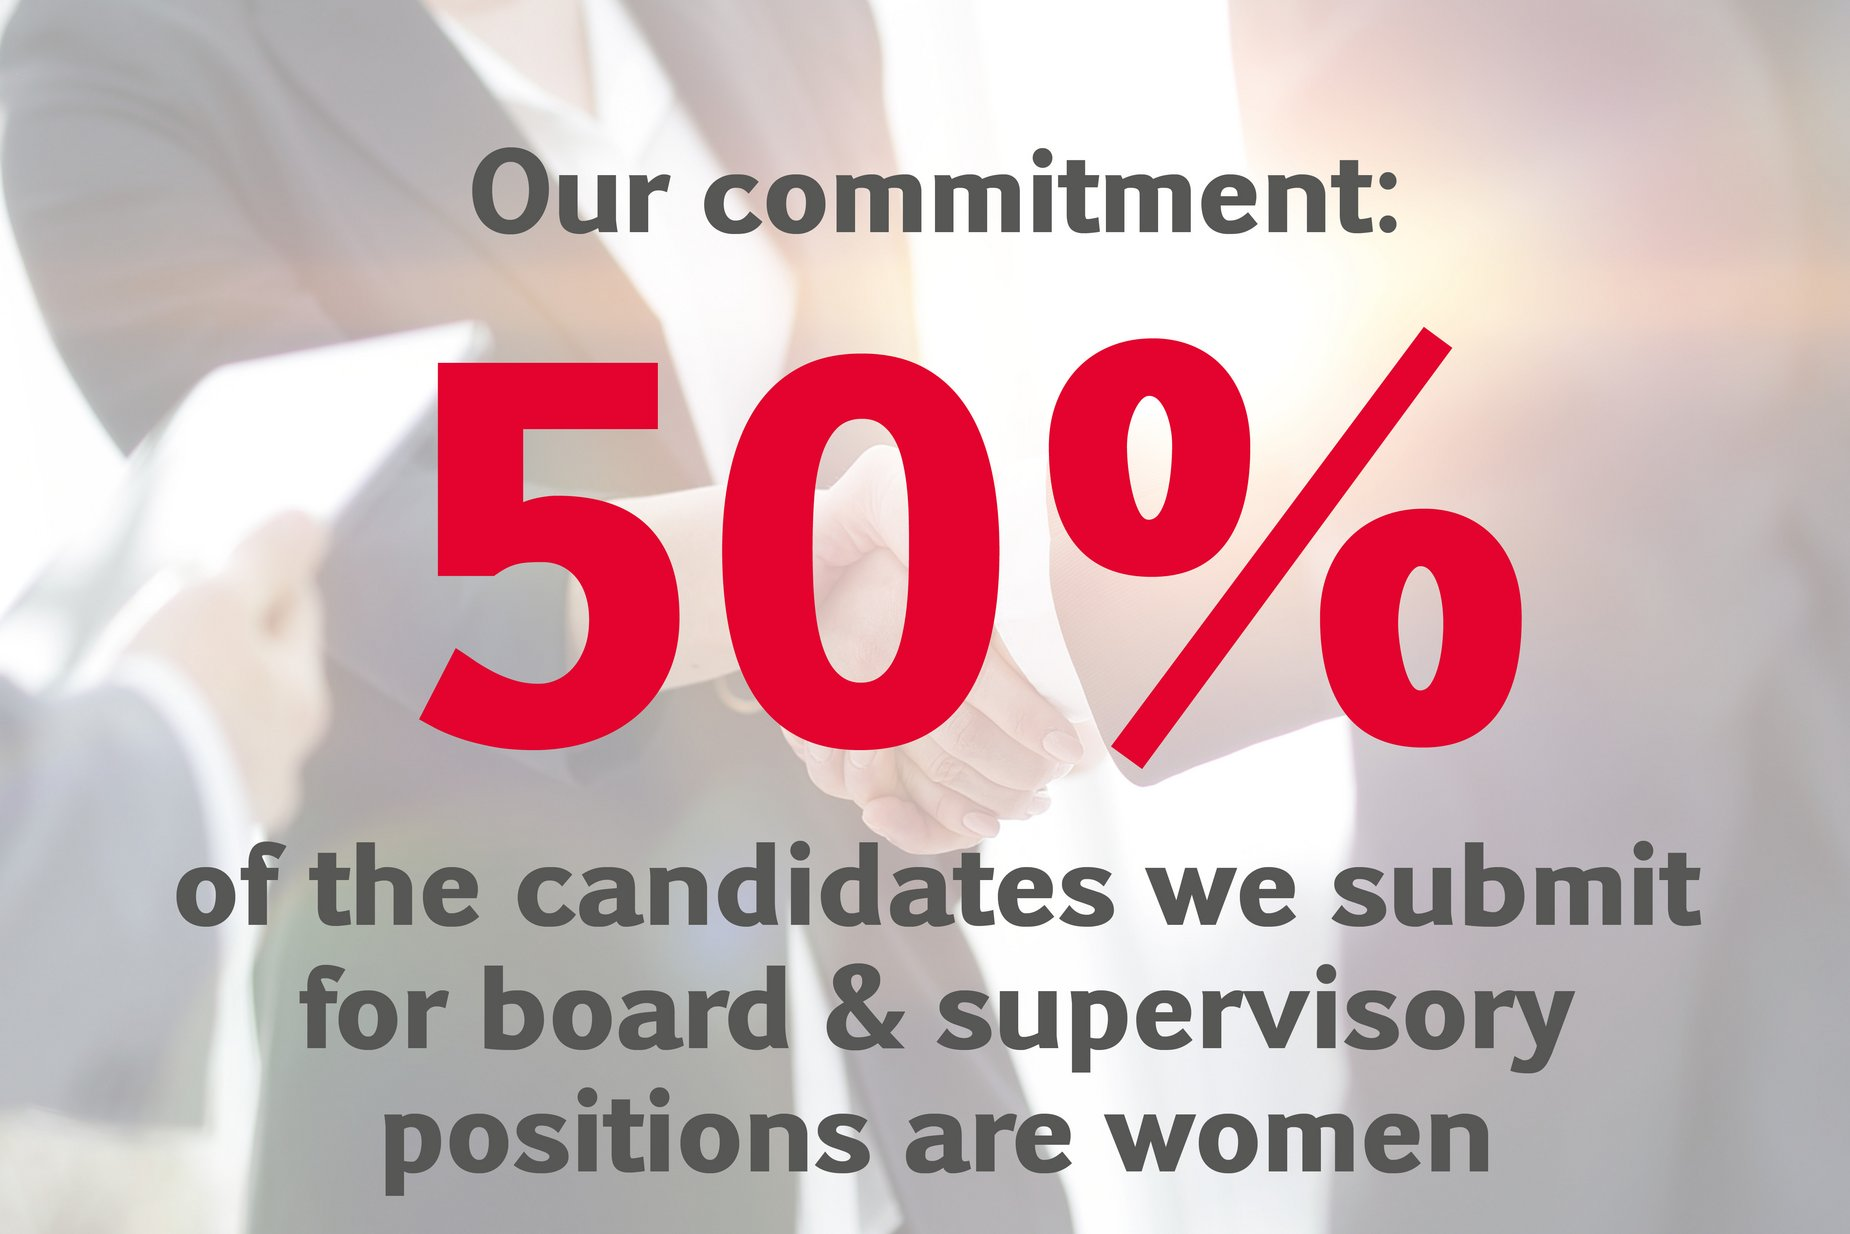 Our commitment: 50% of the candidates we submit for board & supervisory positions are women